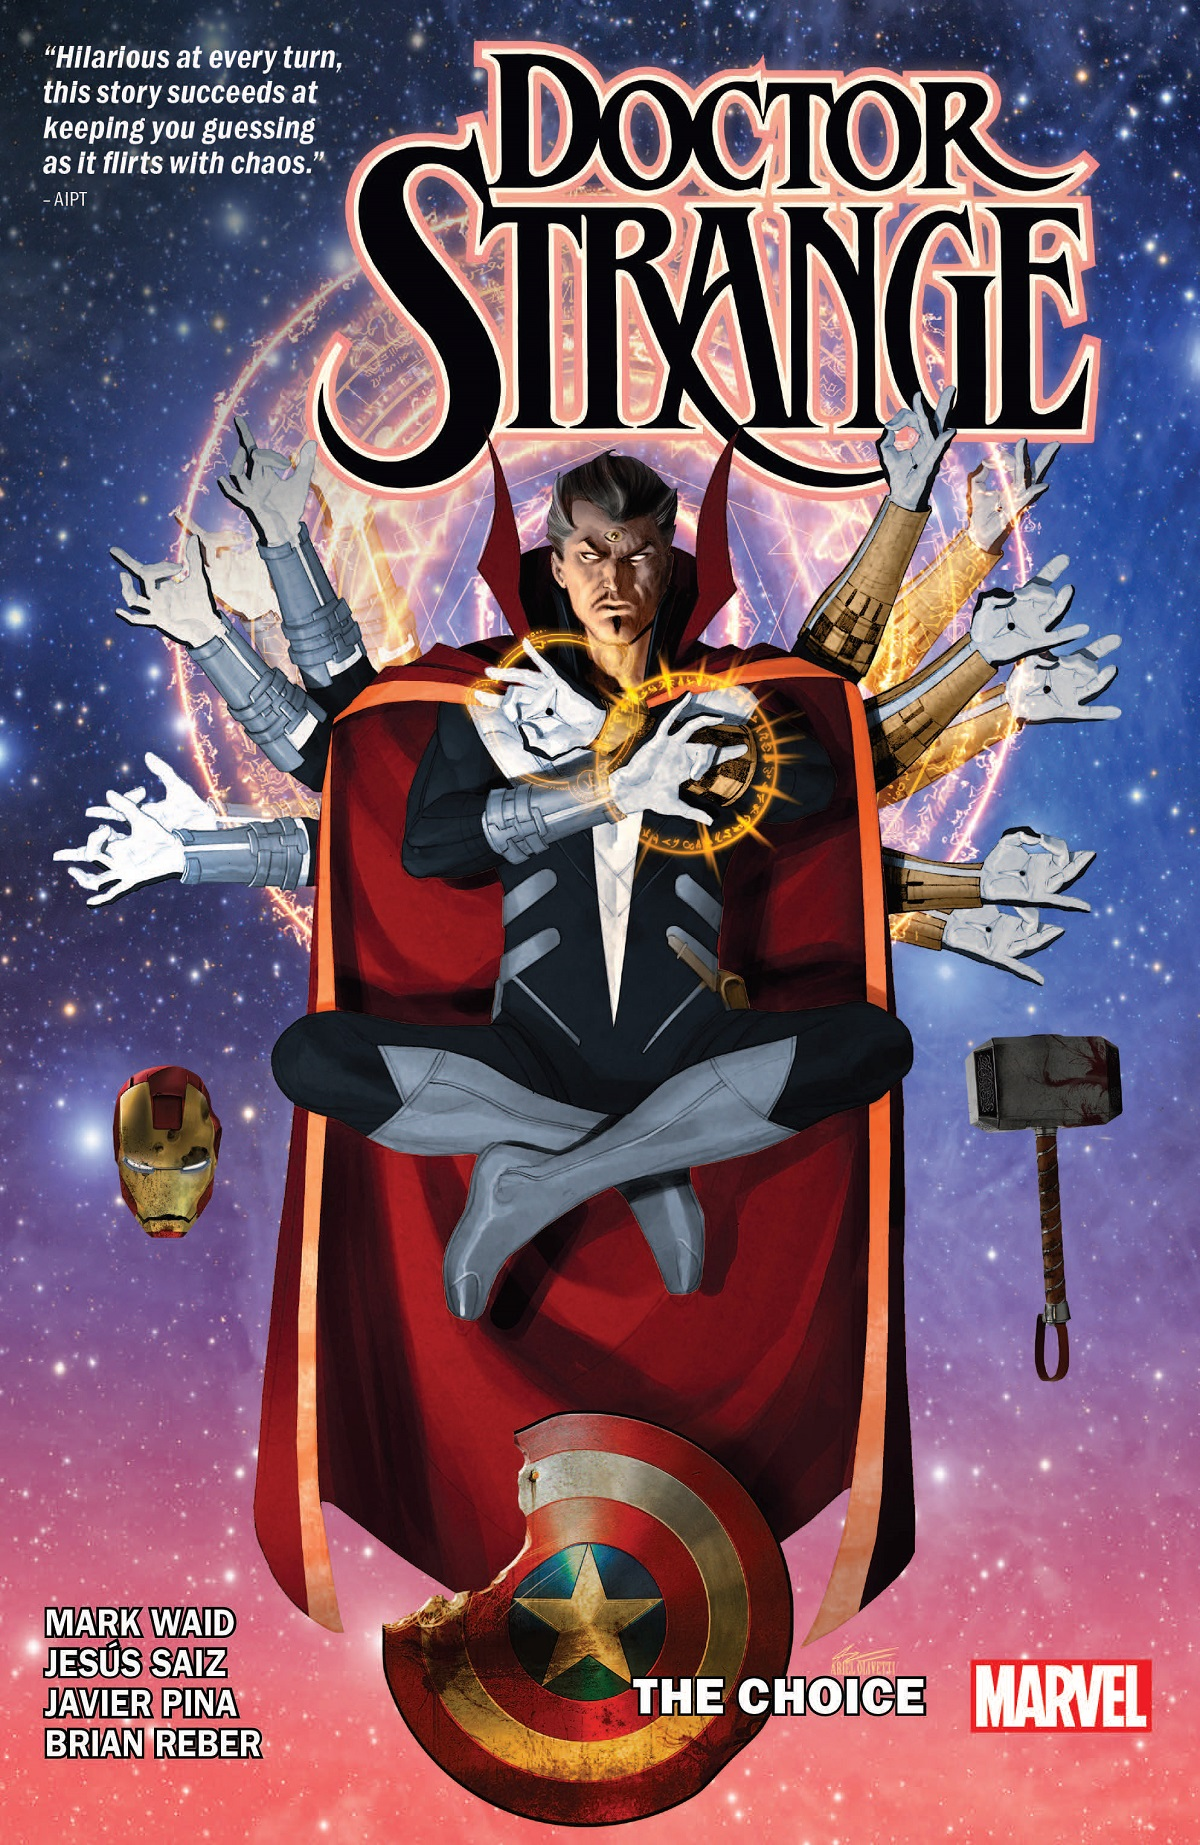 Doctor Strange By Mark Waid Vol. 4: The Choice (Trade Paperback)